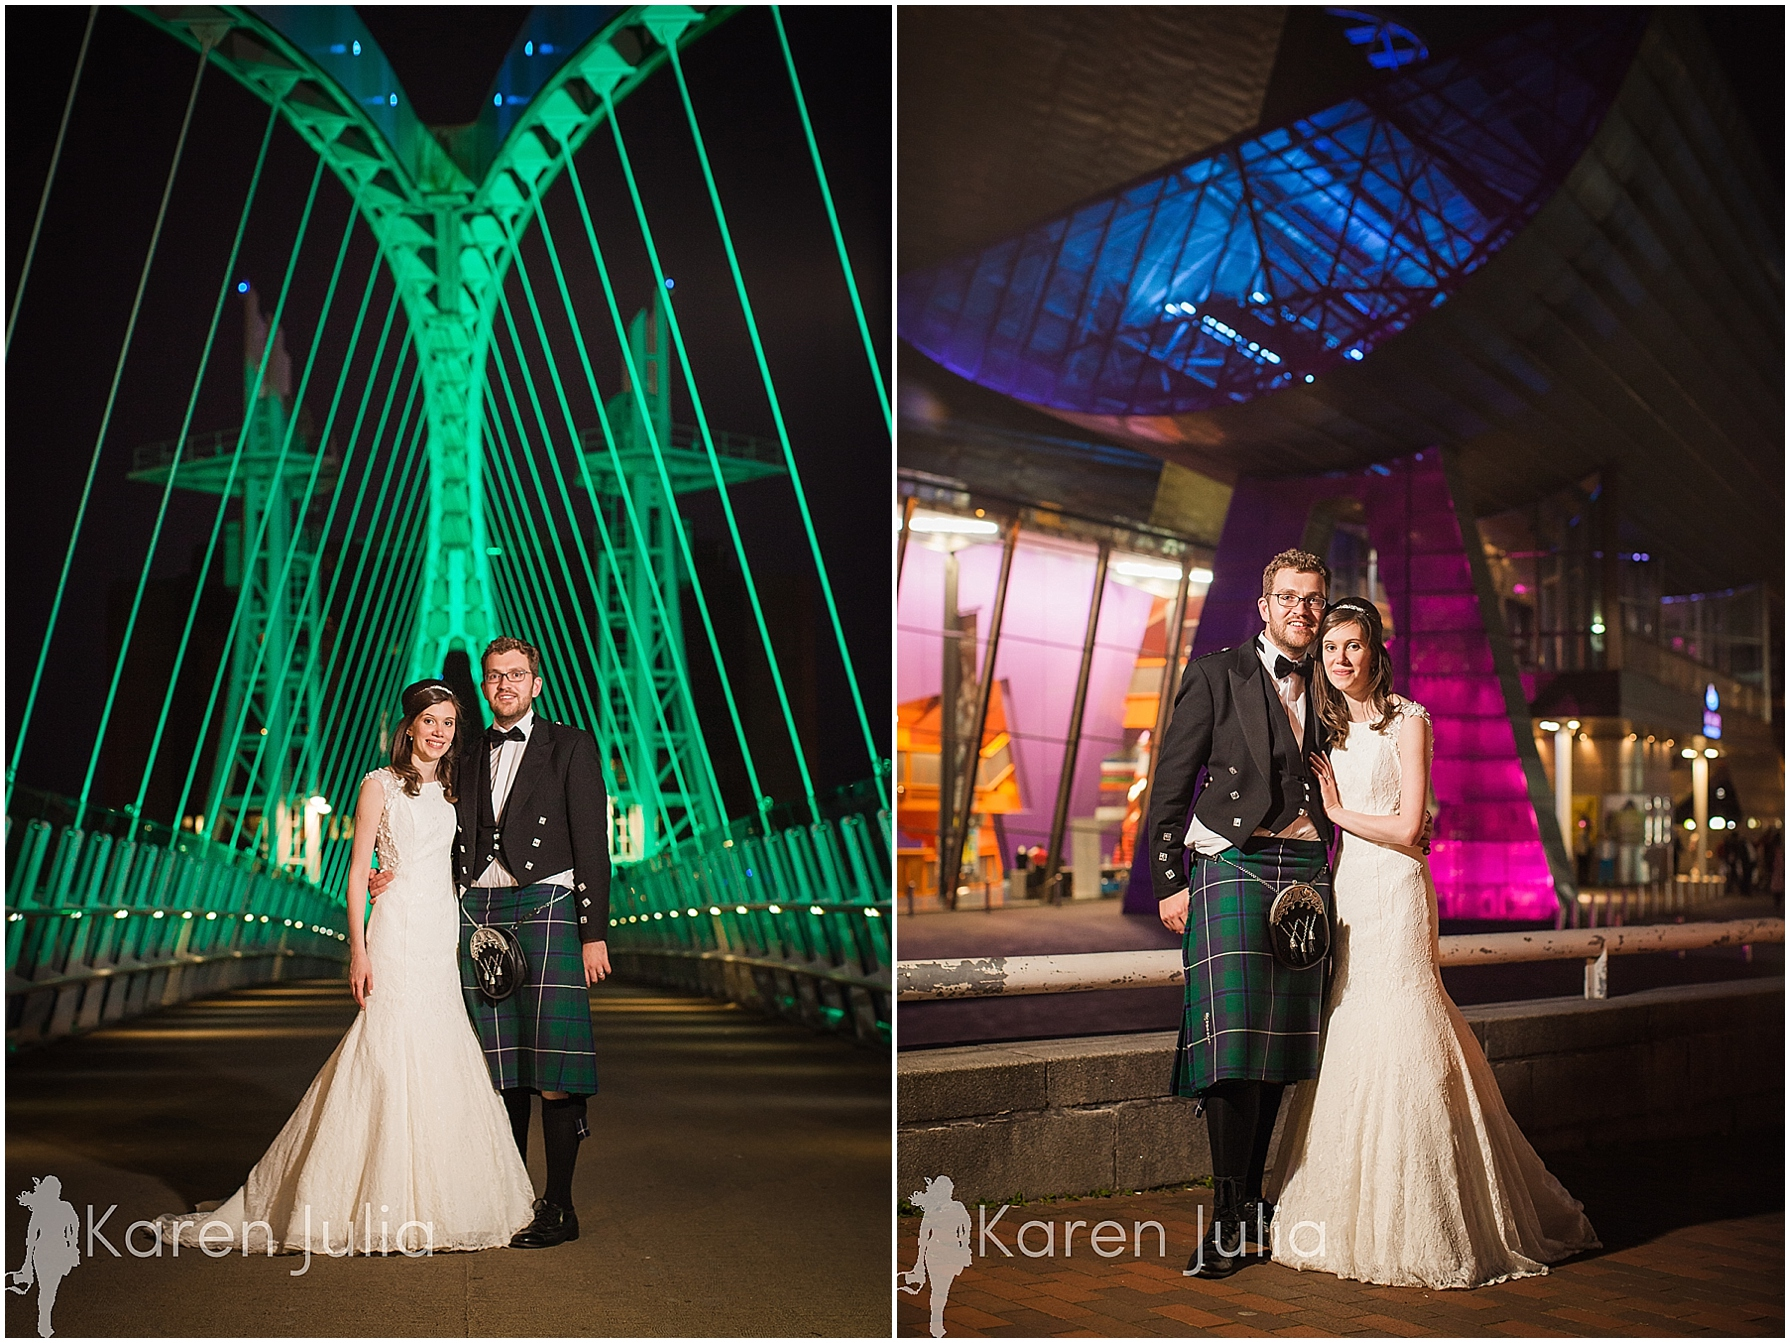 wedding couple portrait on bridge near lowry theatre at night